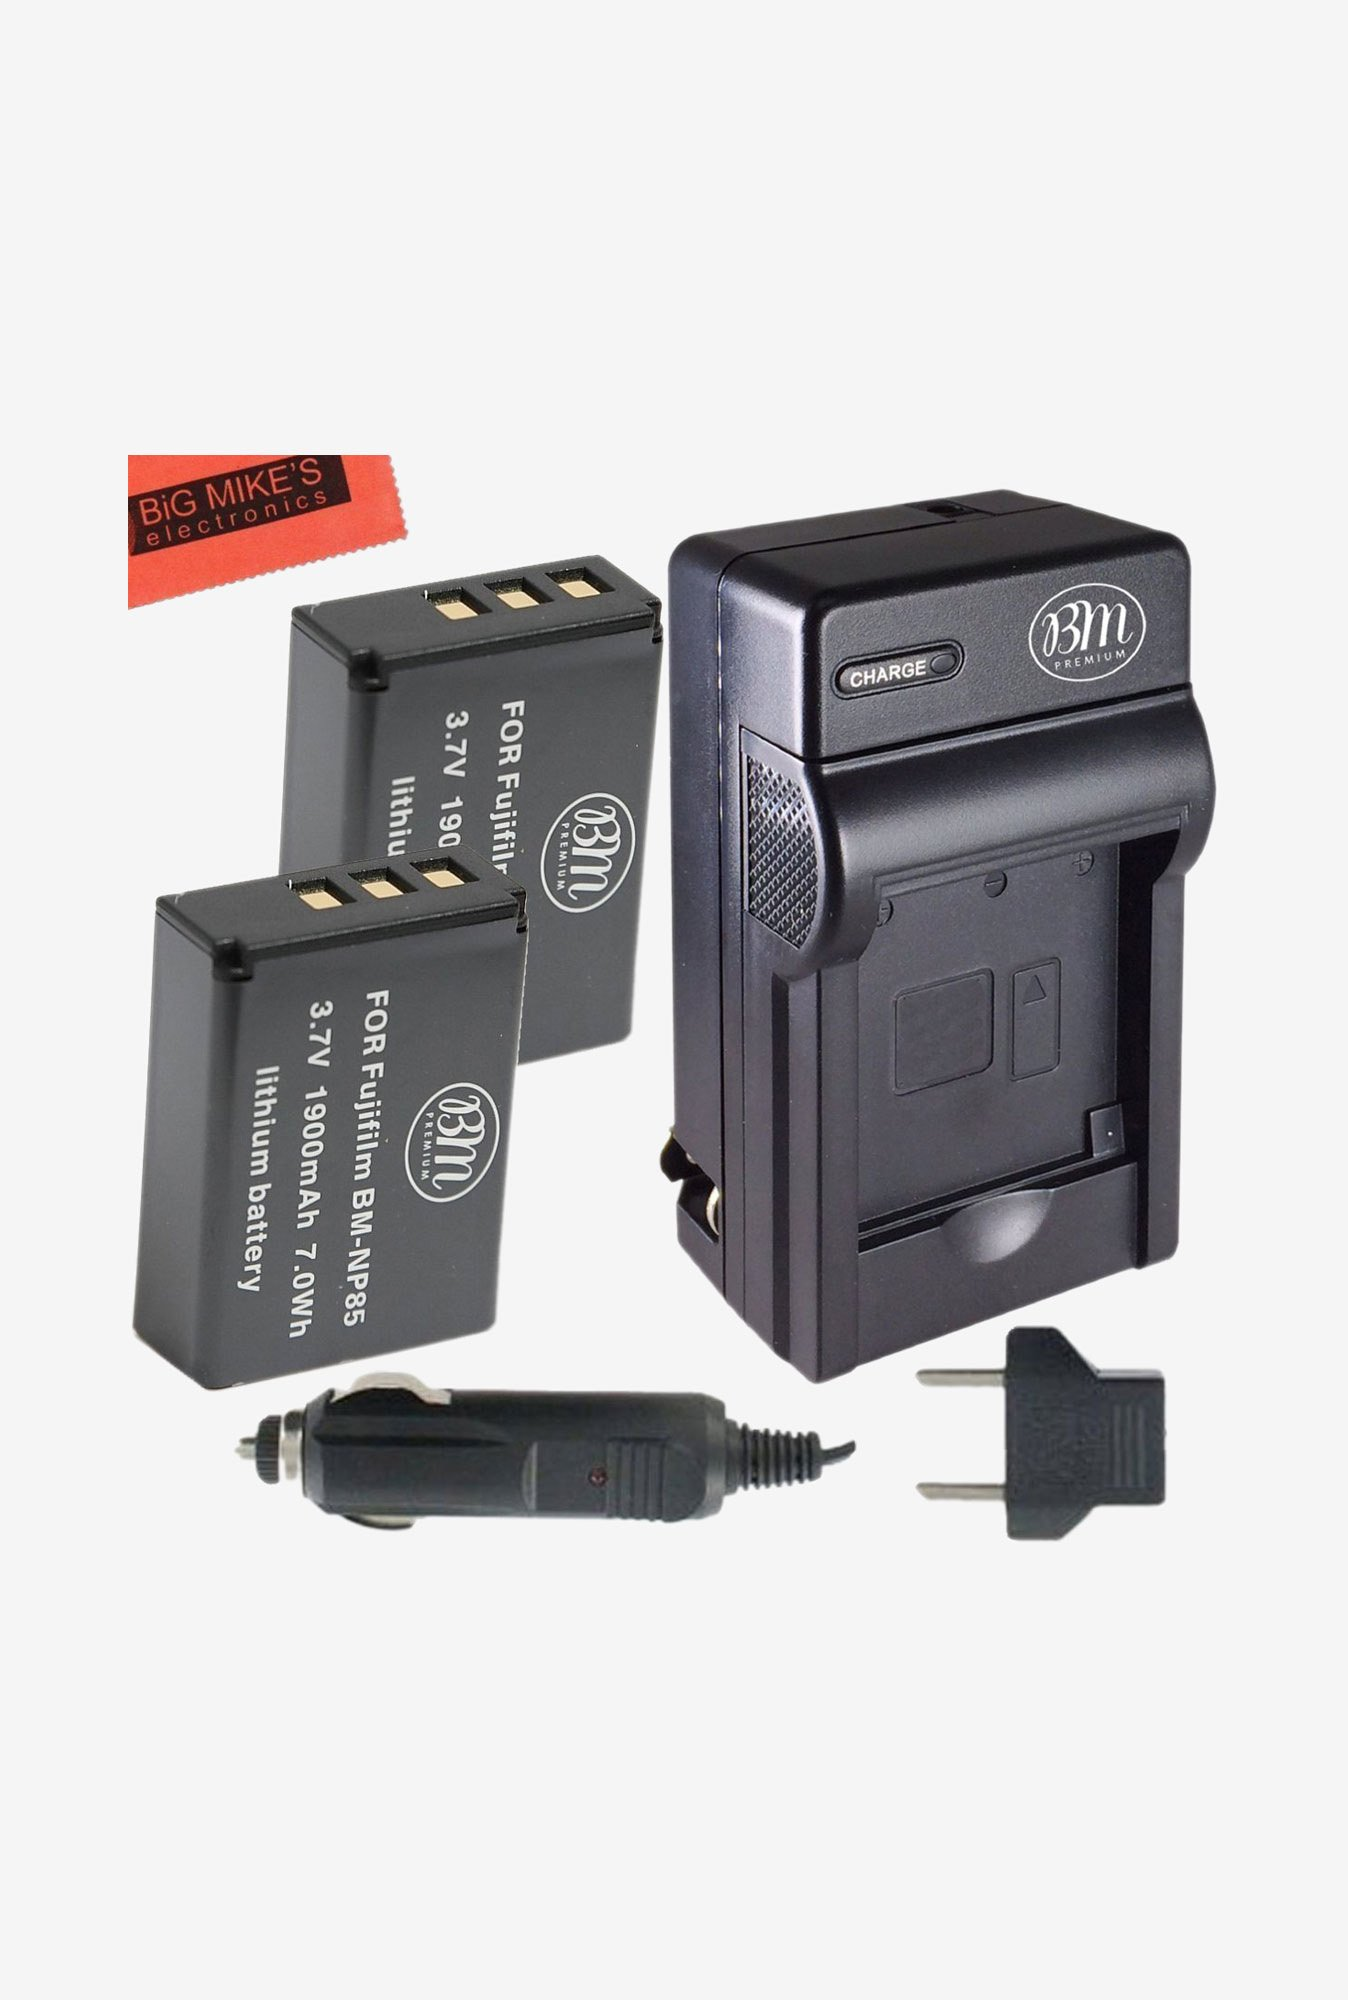 Big Mike's Np-85 1900 mAh Battery & Charger Kit For Fujifilm